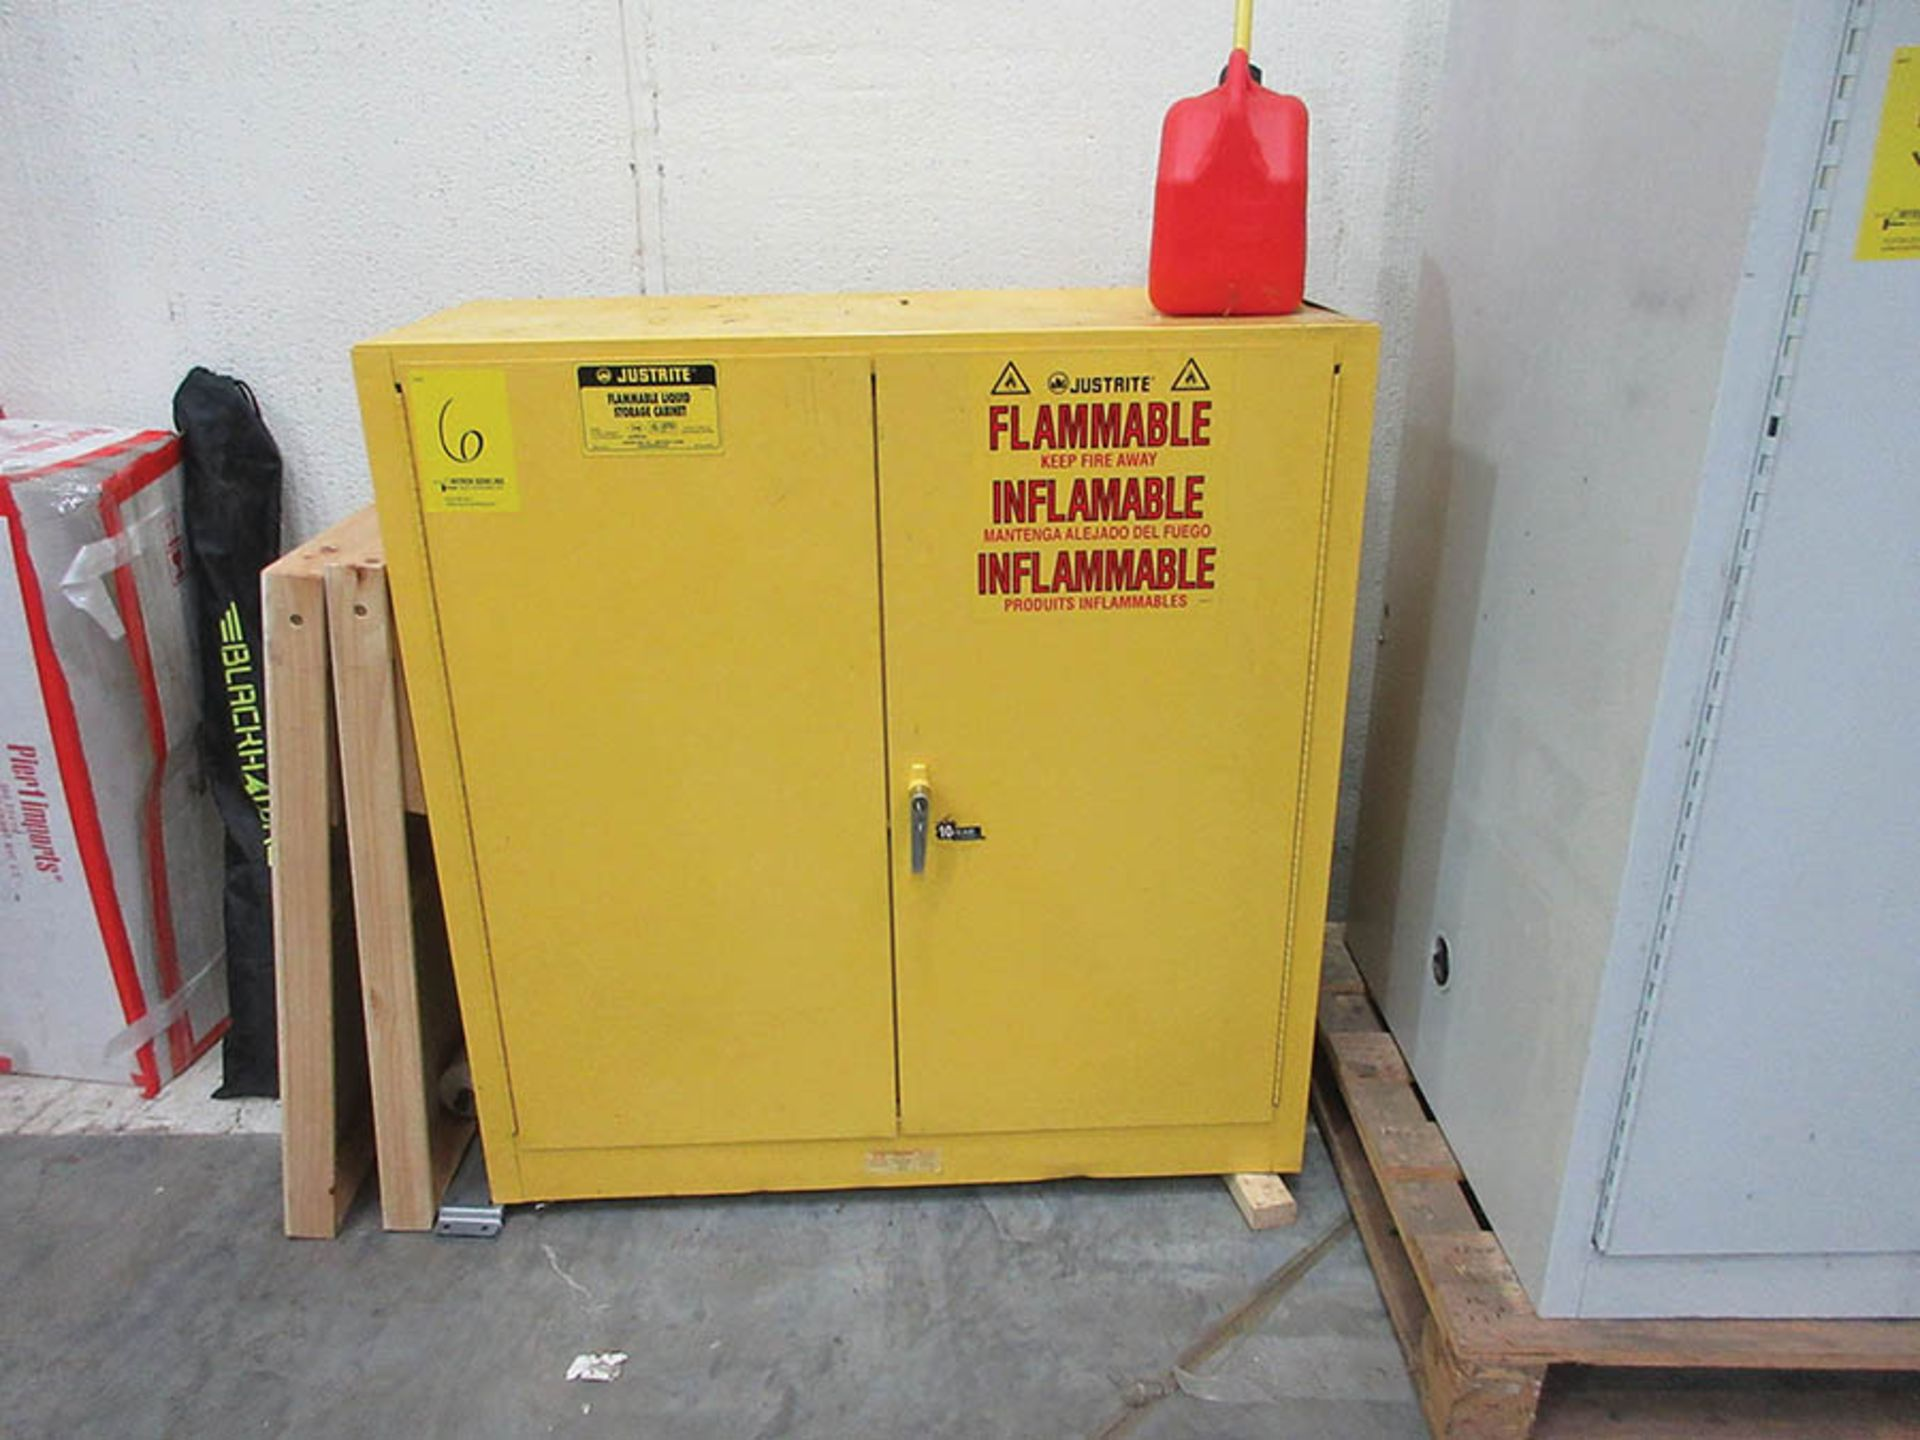 Lot 6 - JUSTRITE 30 GAL. FLAMMABLE LIQUID STORAGE CABINET W/ CONTENT